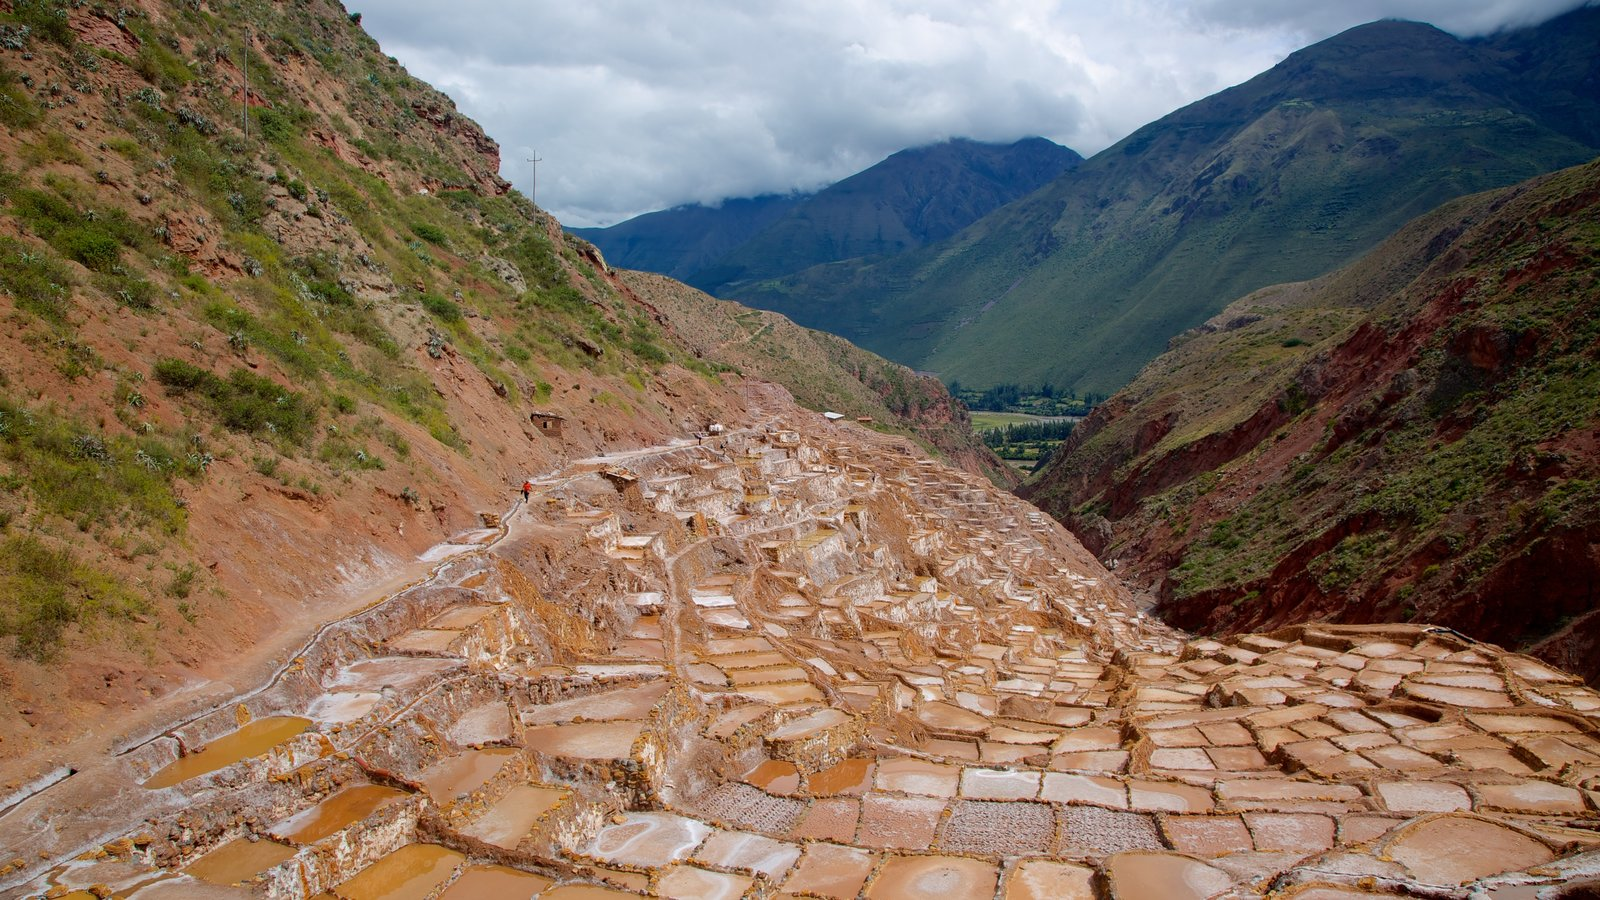 Salt Mines Of Maras showing mountains and landscape views